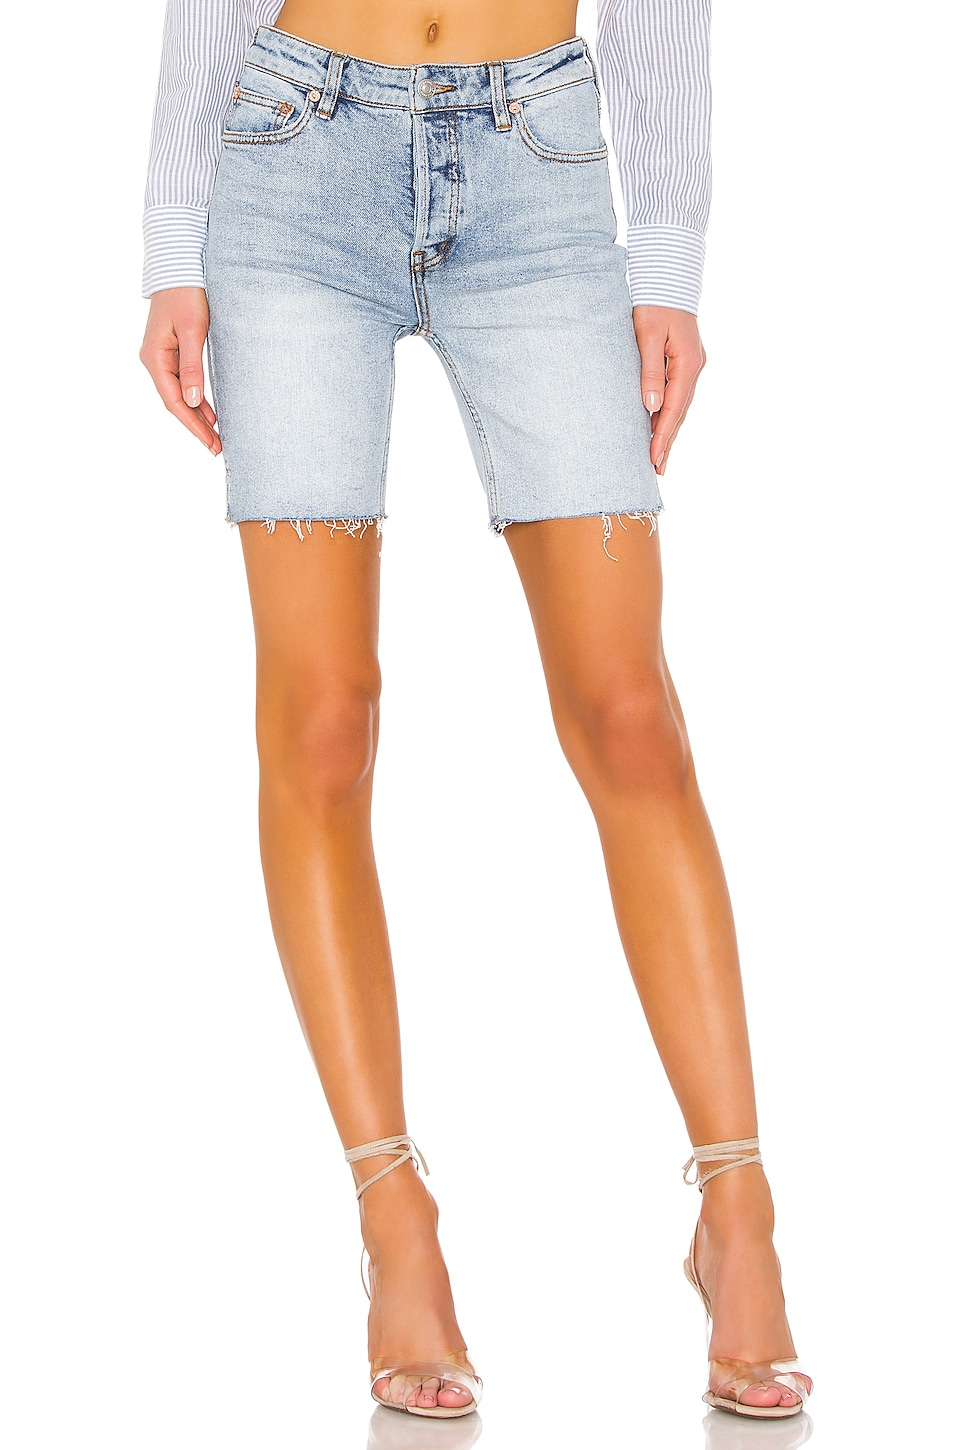 Free People Avery Bermuda Short in Denim Blue